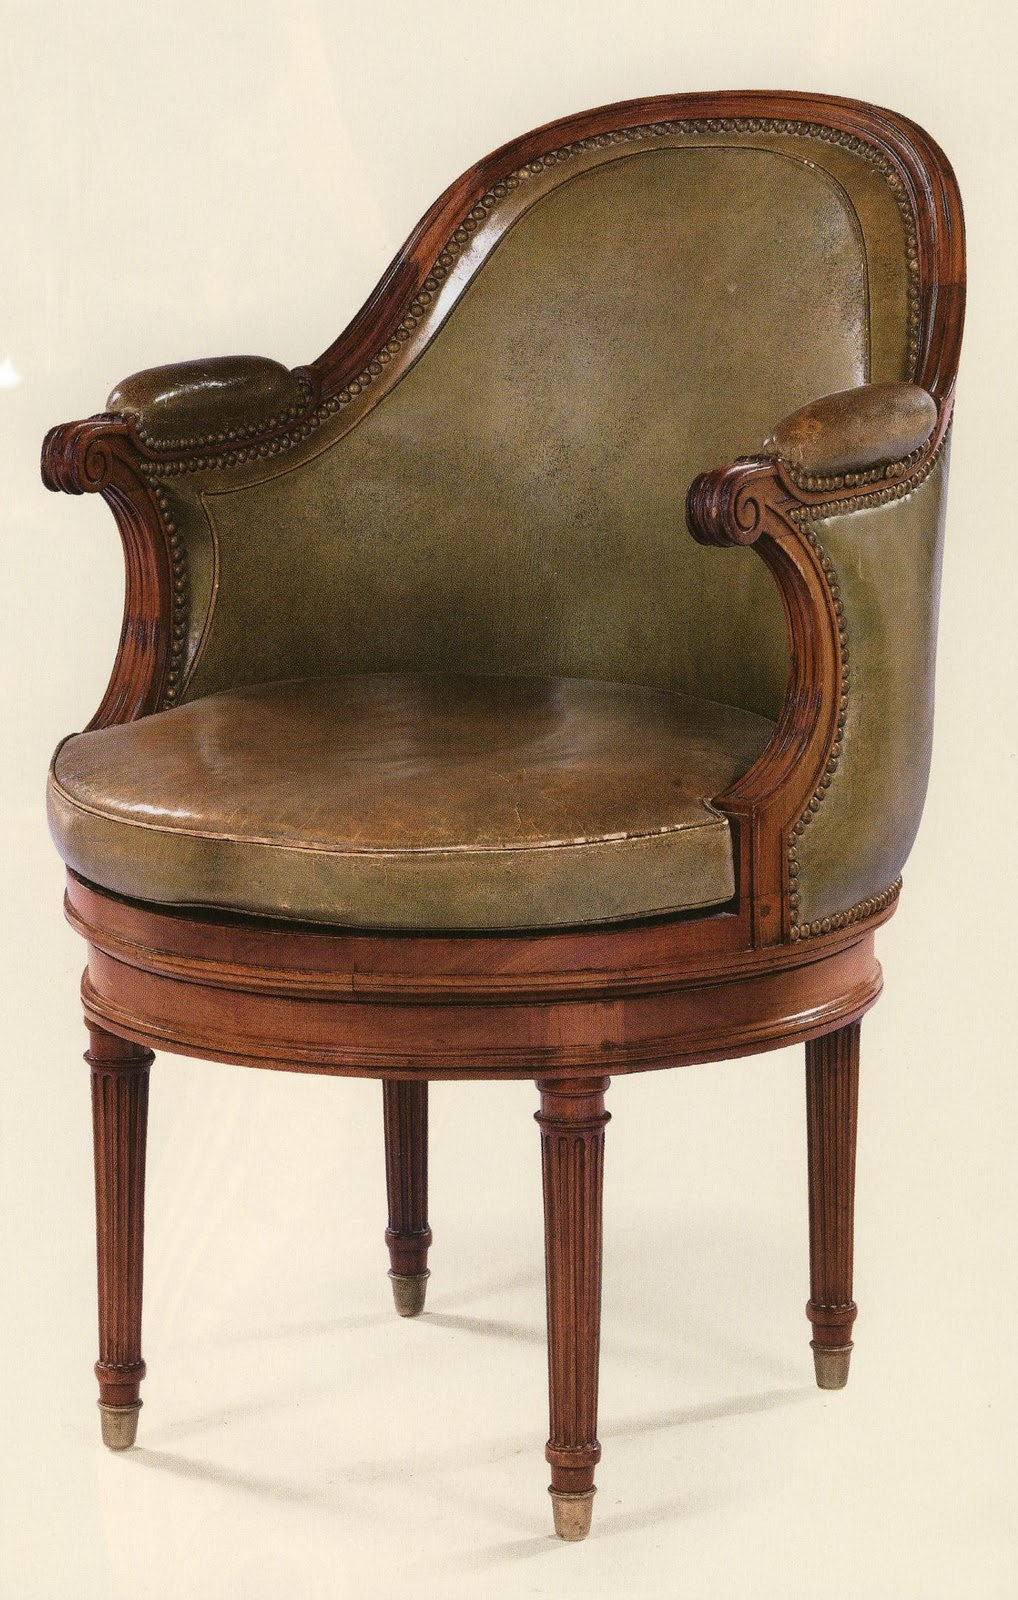 1000 Images About French Chairs Through The Centuries On Pinterest Louis Xvi Armchairs And